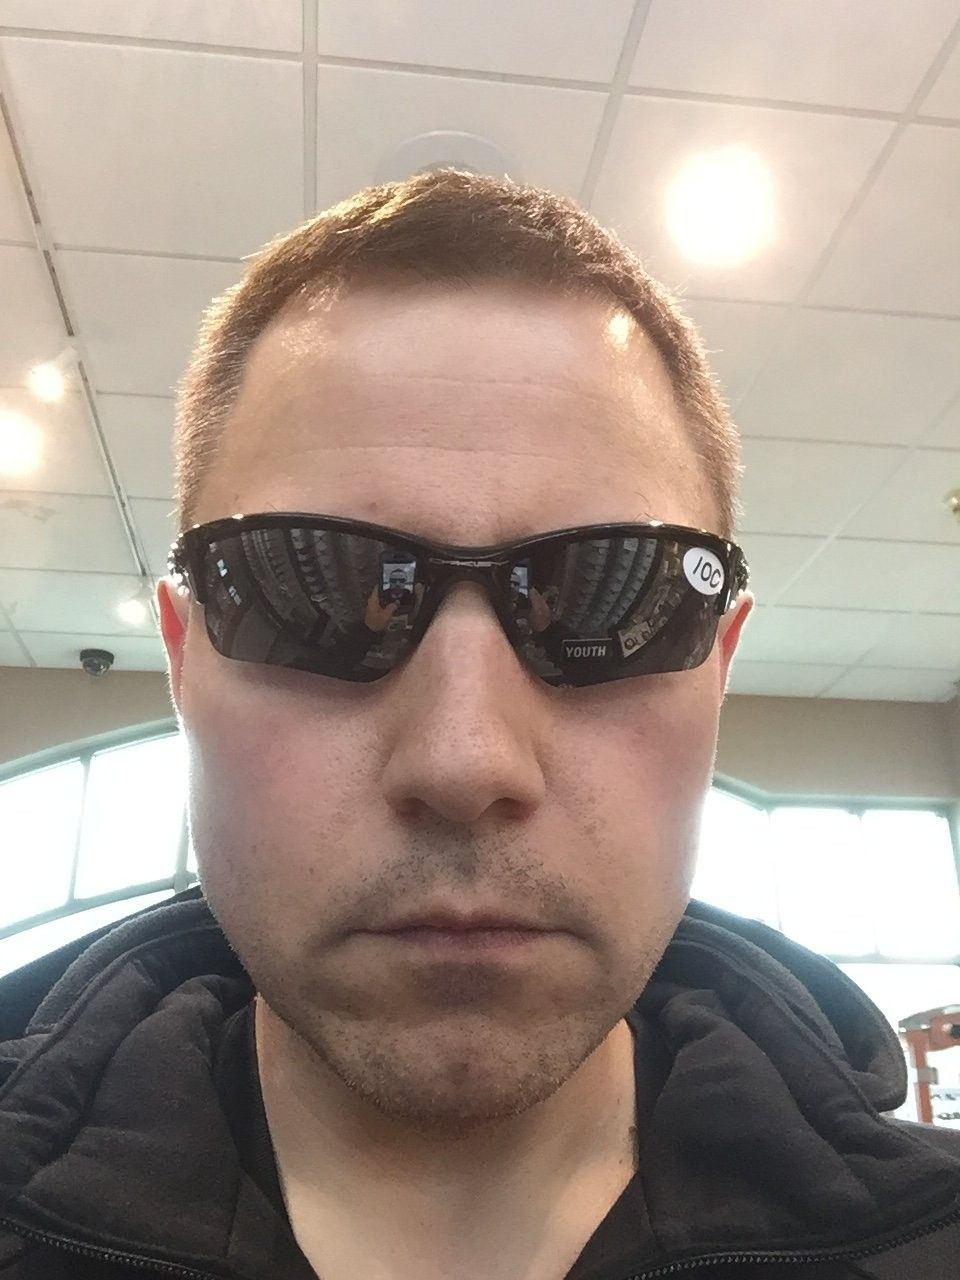 When you are bored waiting and start trying on oakleys at the optometrist - image.jpeg